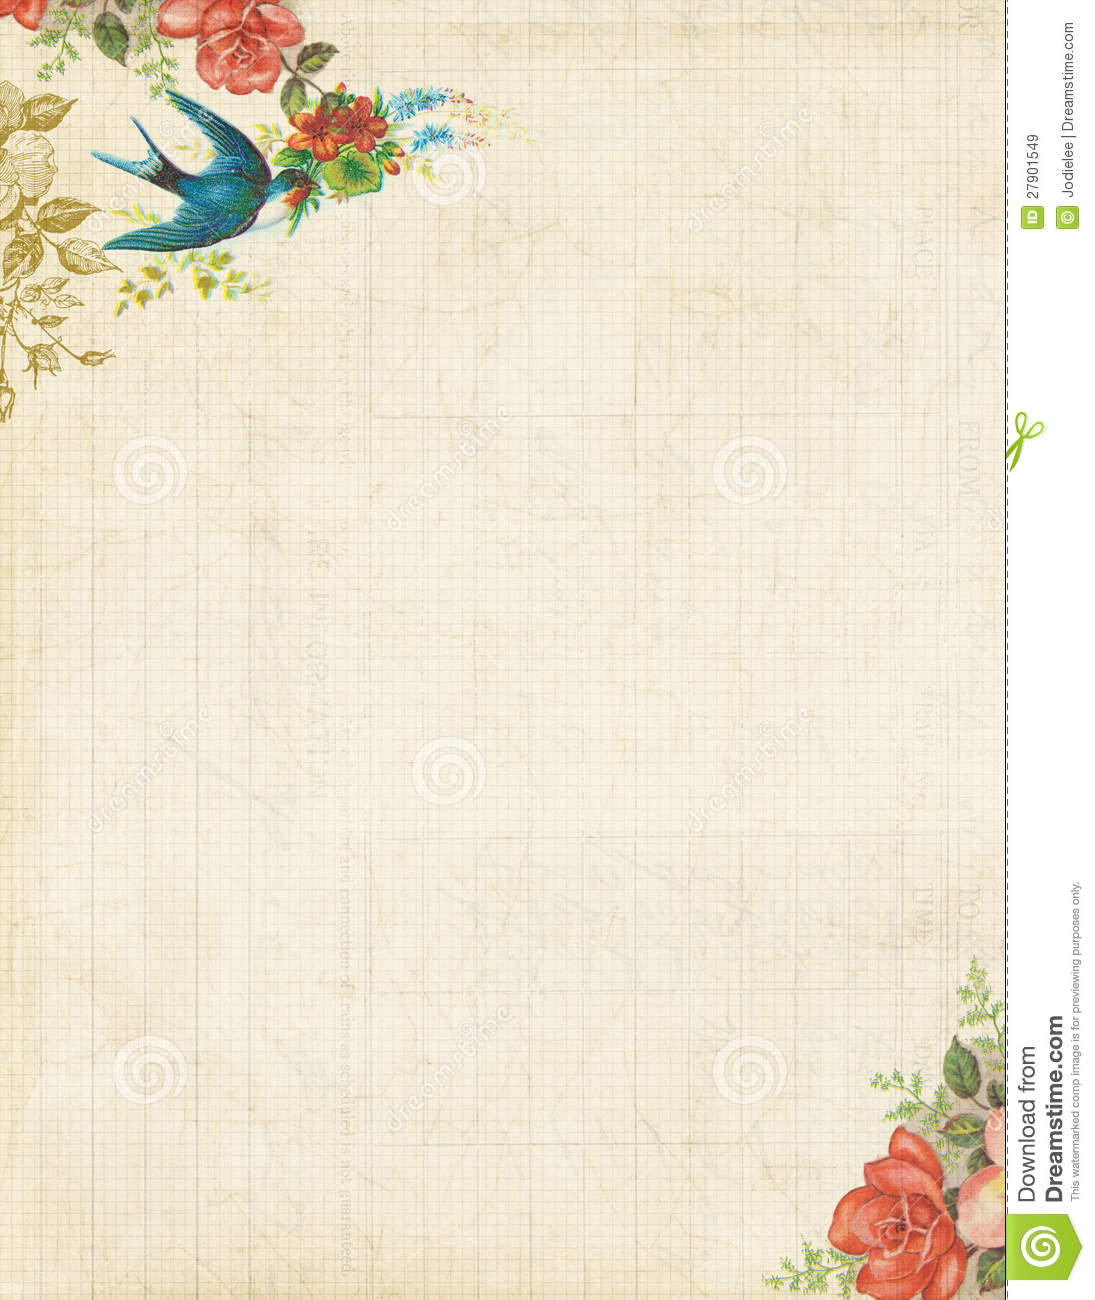 image about Stationary Printable called Printable Basic Fowl And Roses Stationary Or History